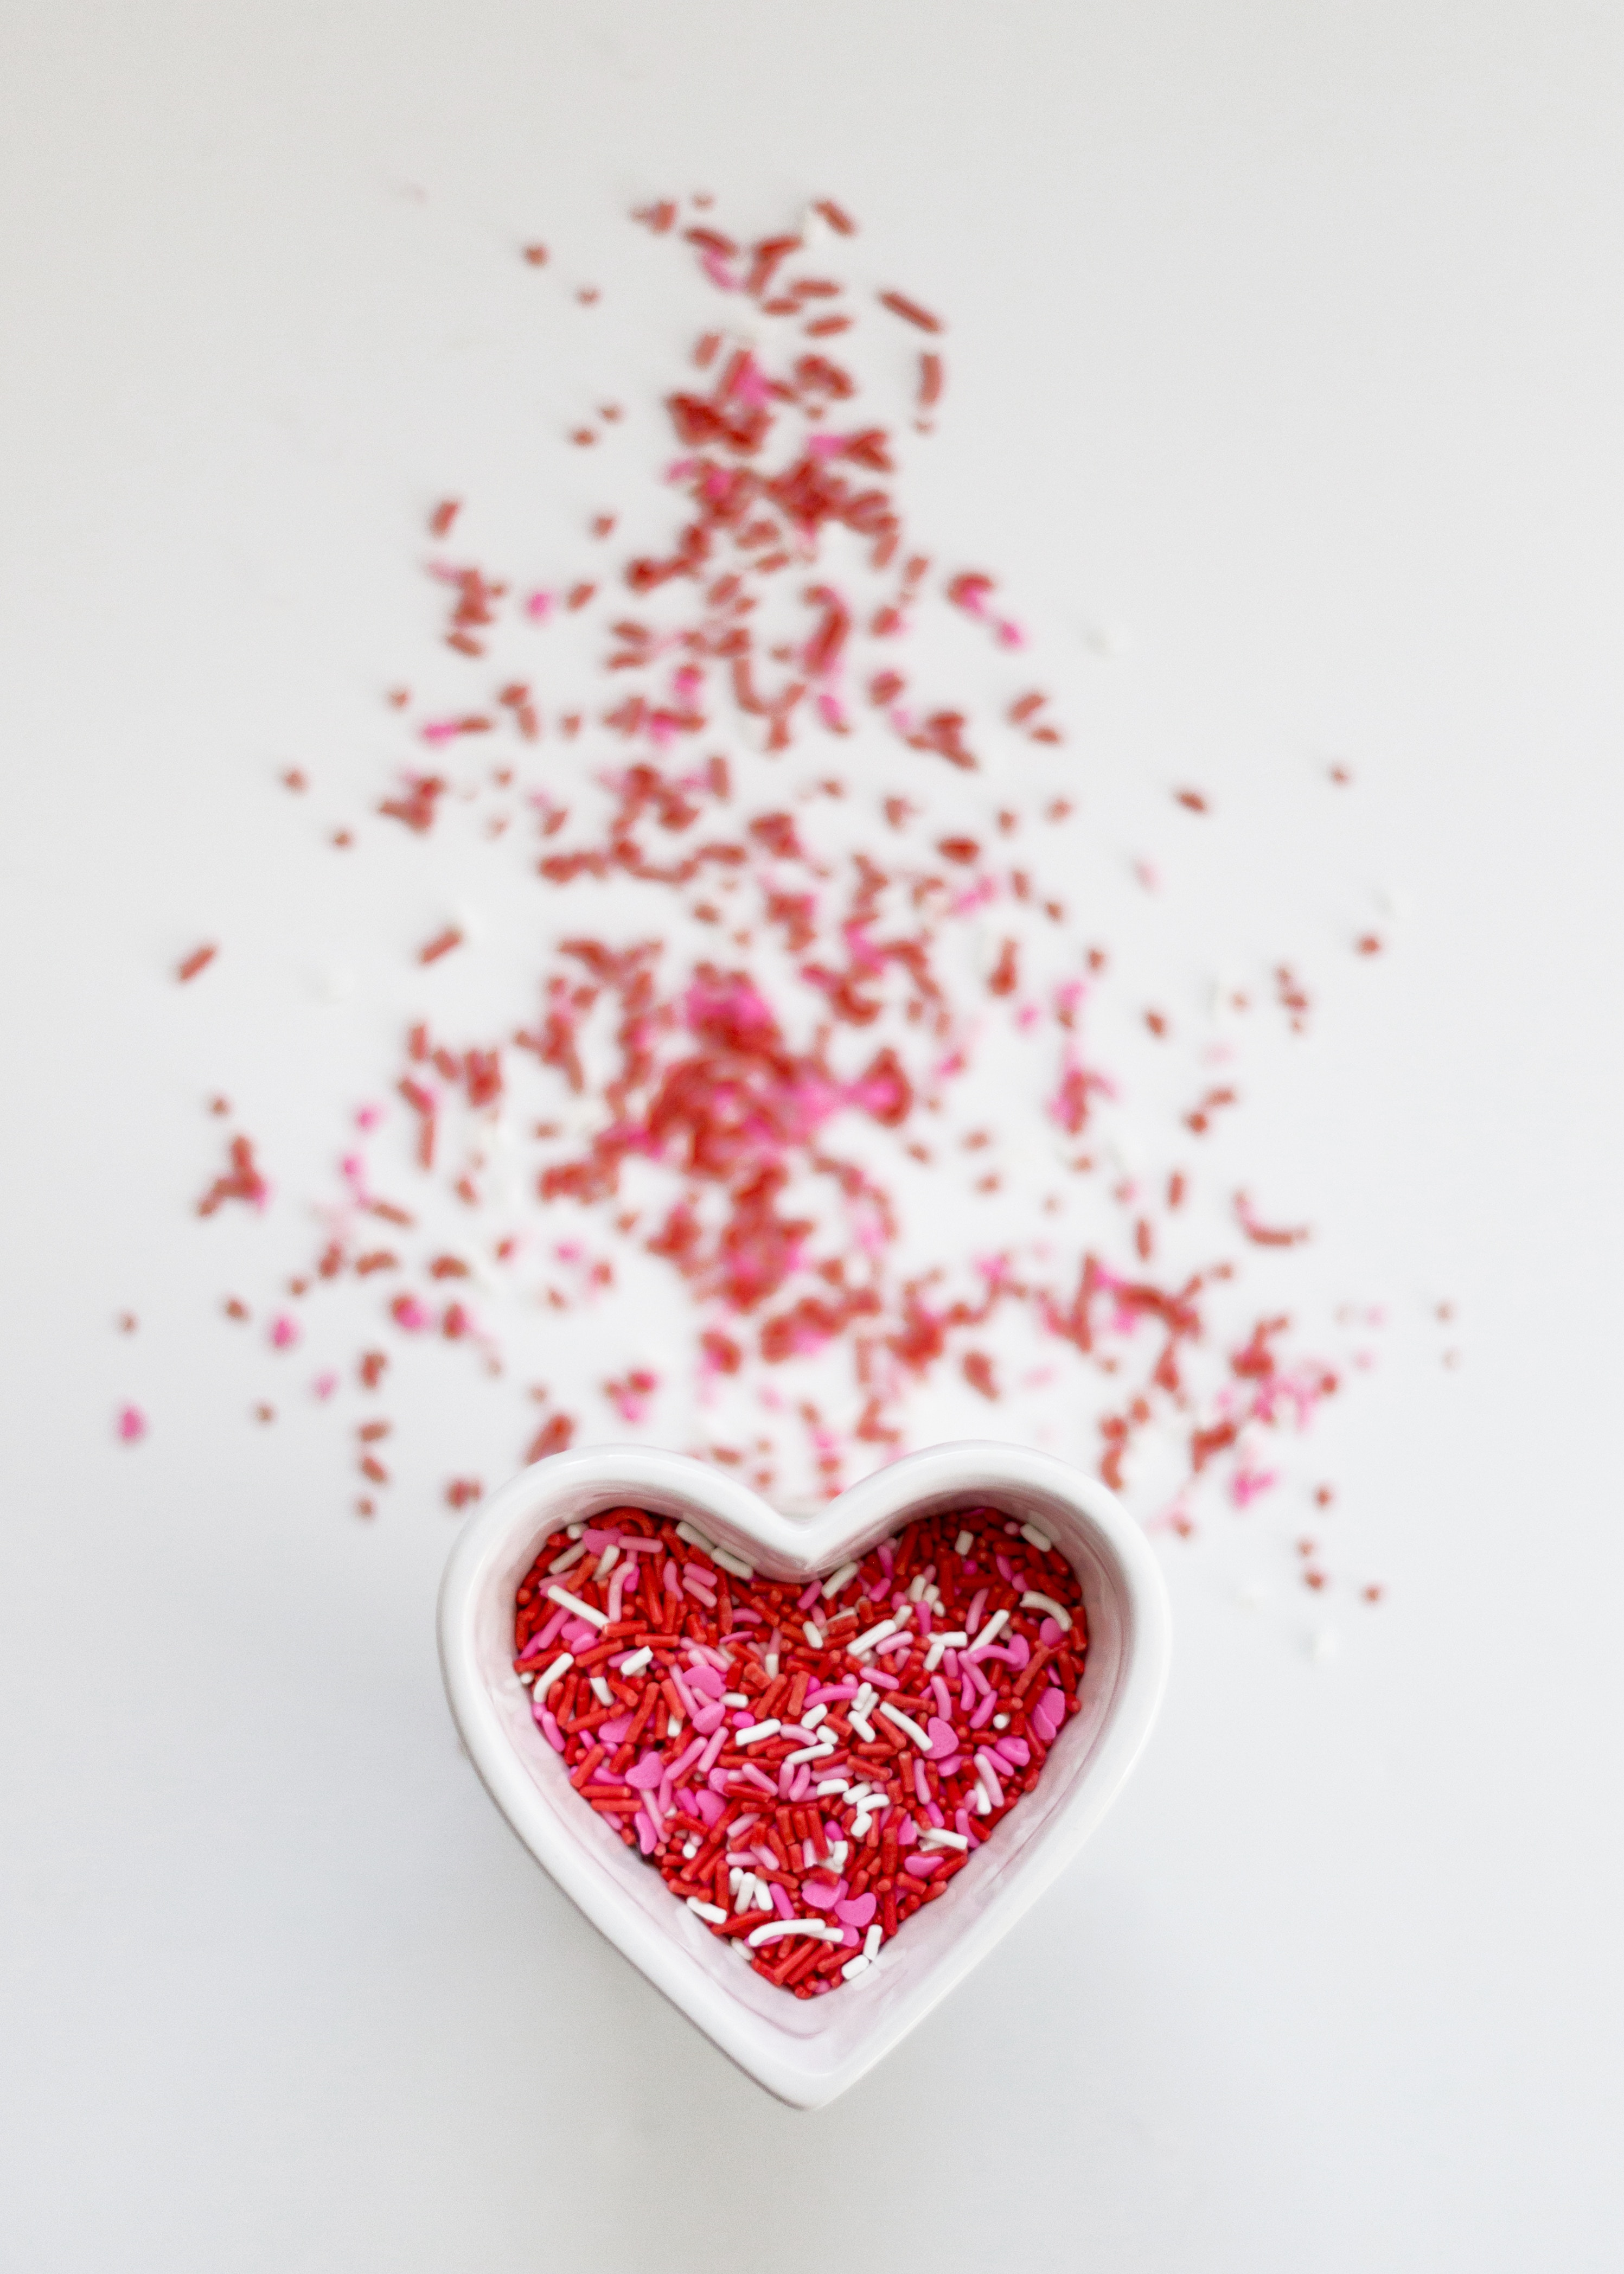 Healthy Ways to Mix Up Valentine's Day {Guest Post} – Michigan Mama News